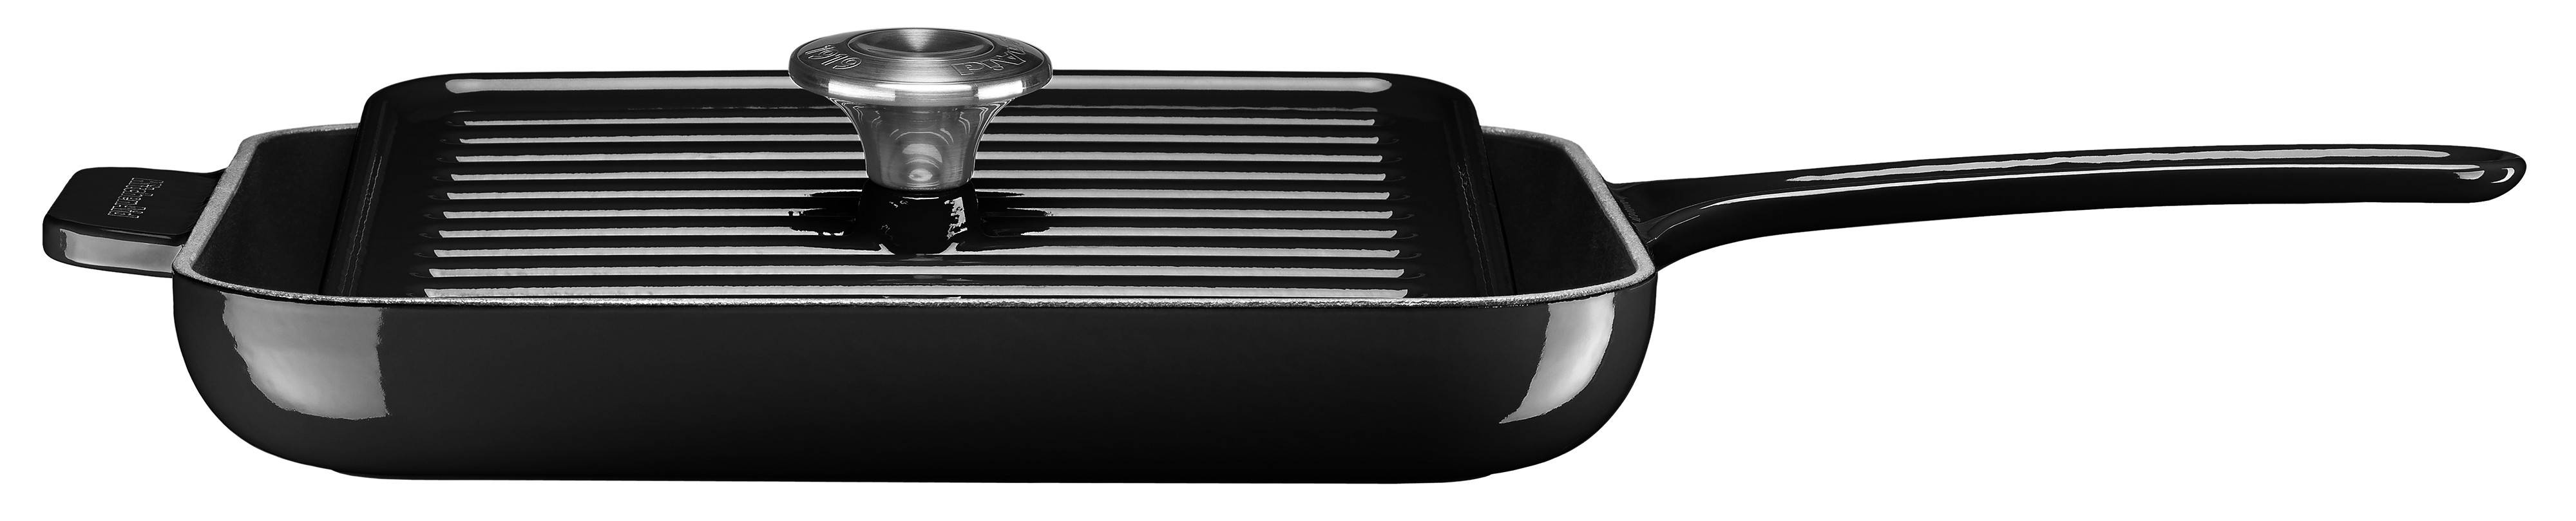 KitchenAid Artisan Grill&Panini Press KCI10GPOB (musta)